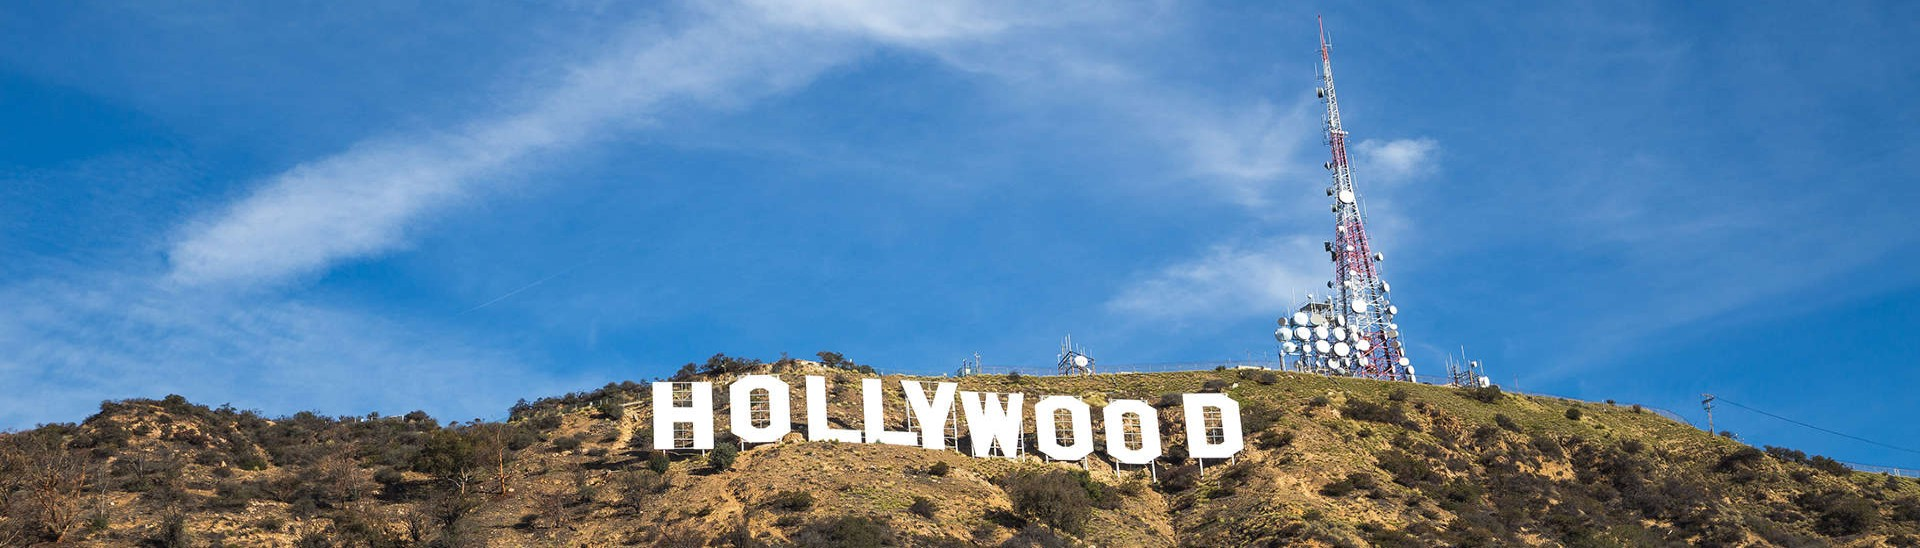 Hollywood sign, American landmark in Los Angeles